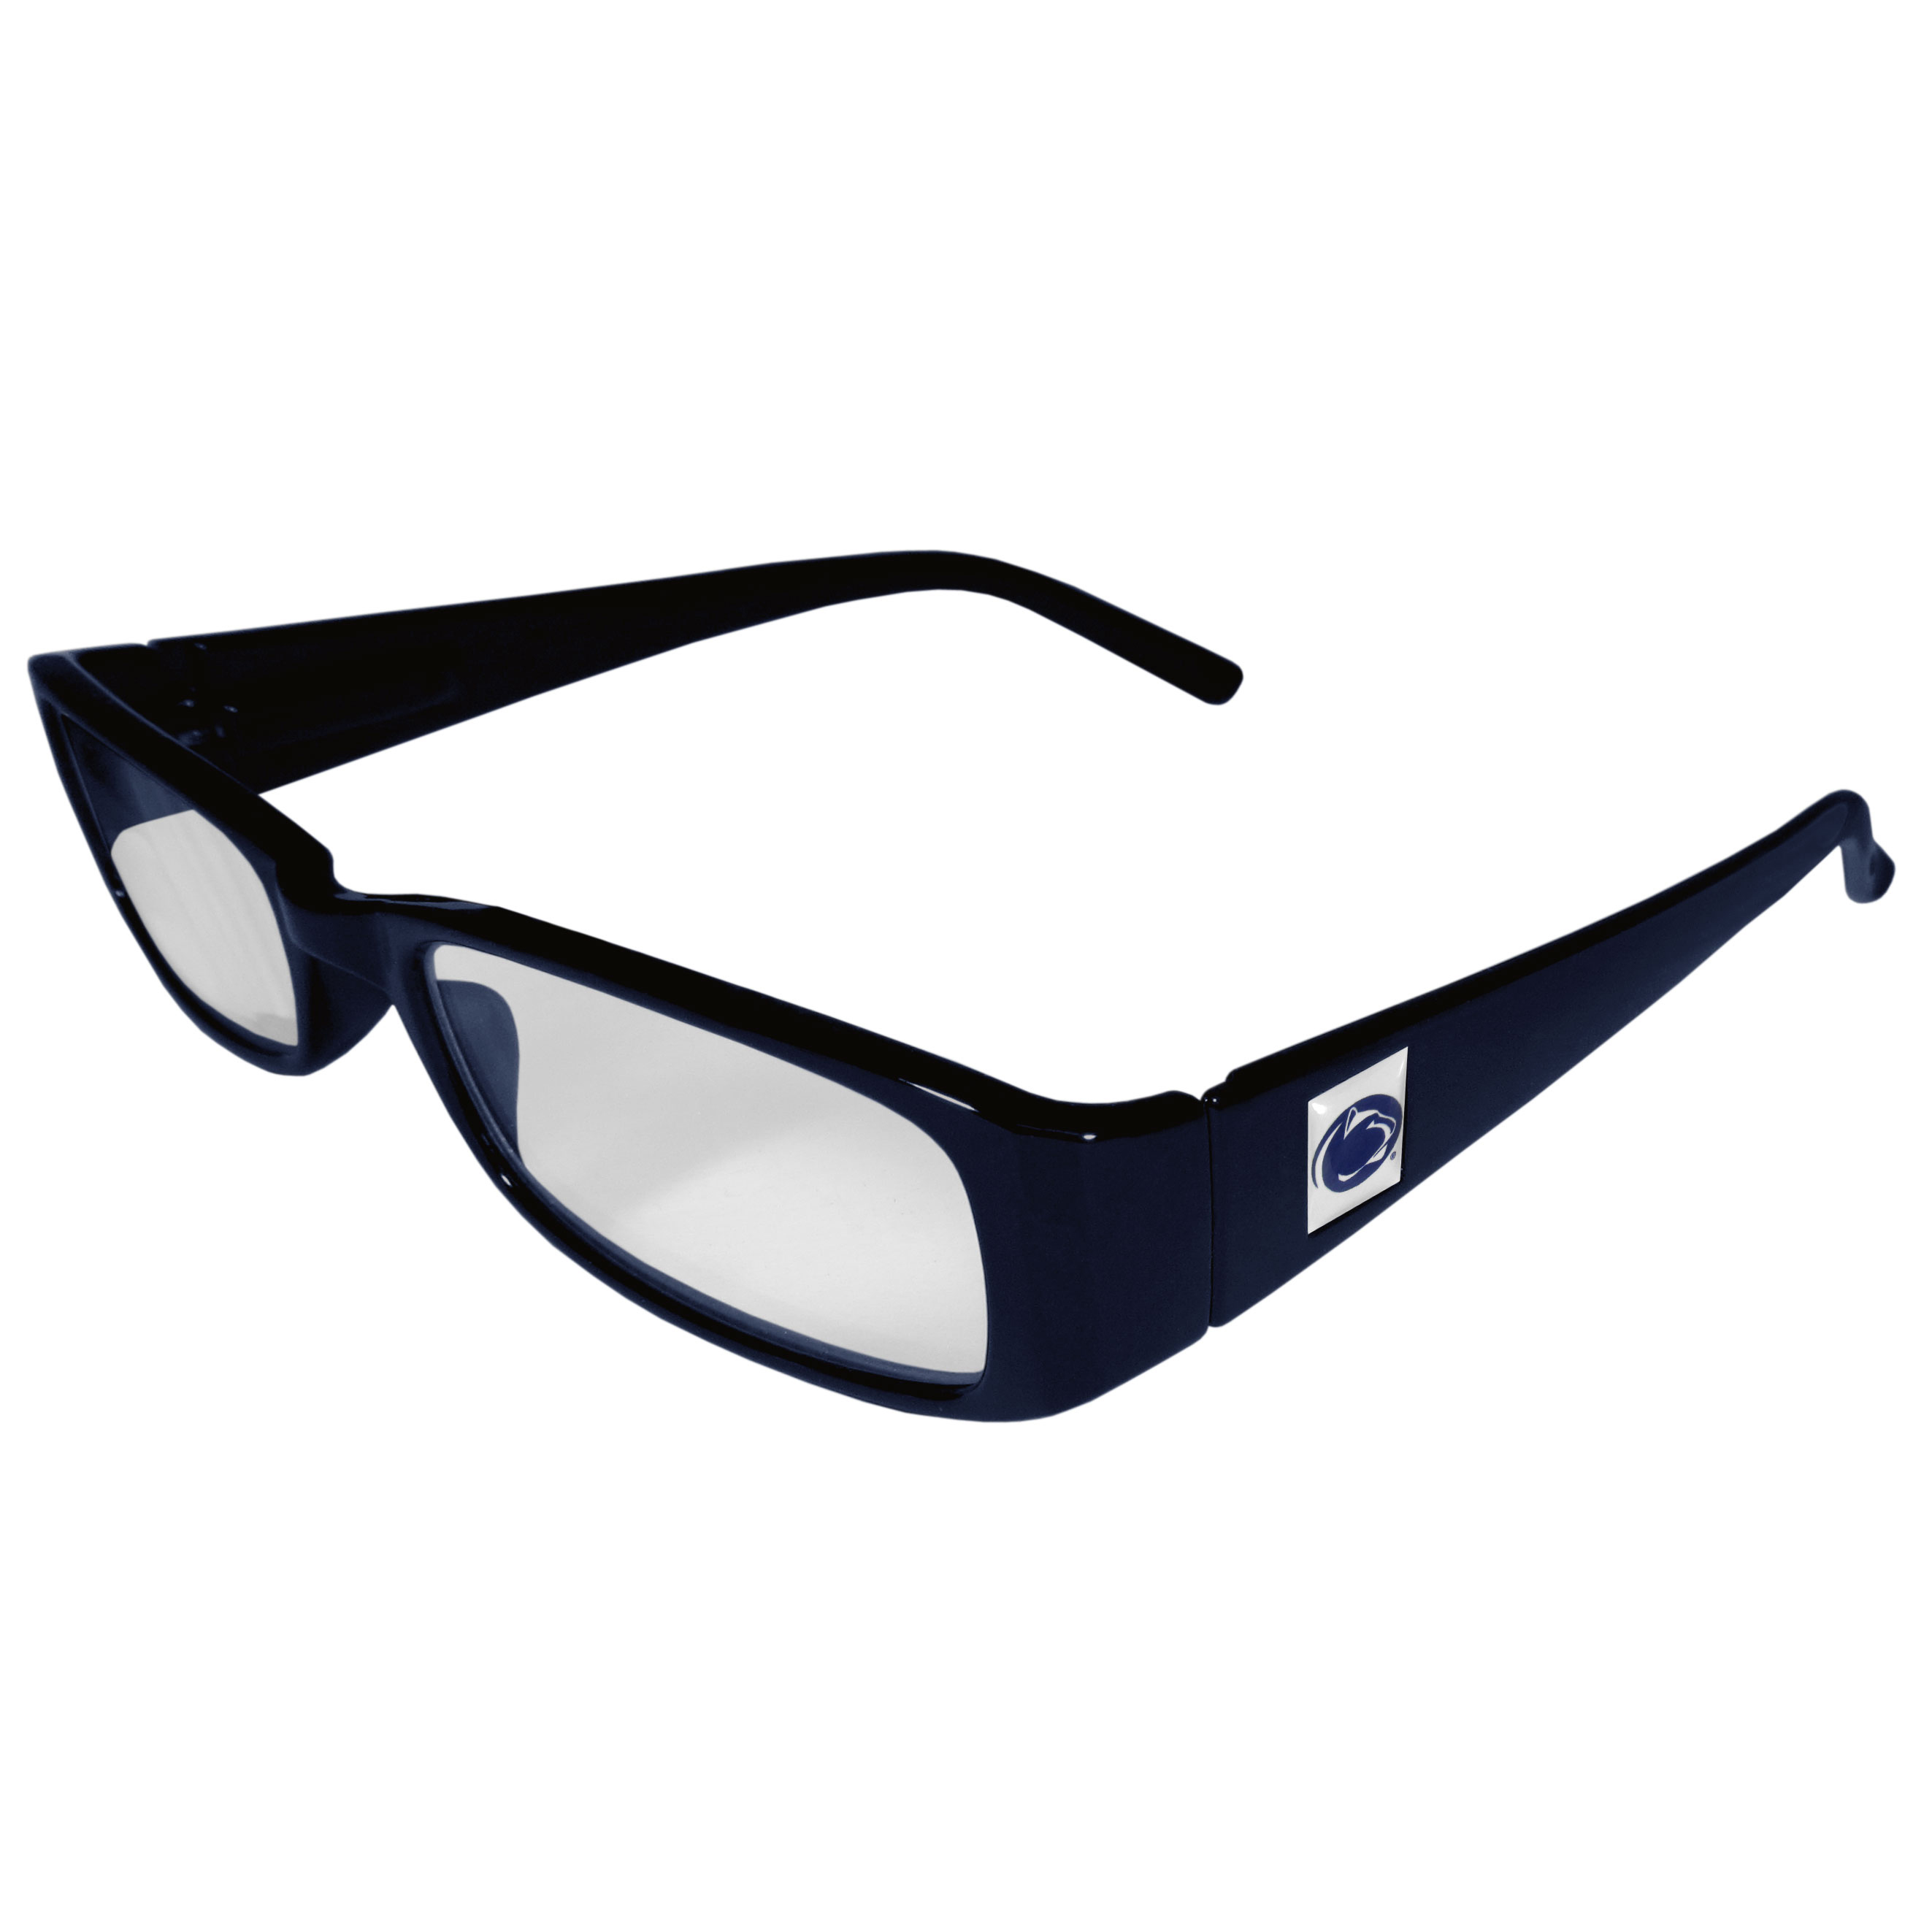 Penn St. Nittany Lions Reading Glasses +1.25 - Our Penn St. Nittany Lions reading glasses are 5.25 inches wide and feature the team logo on each arm. Magnification Power 1.25